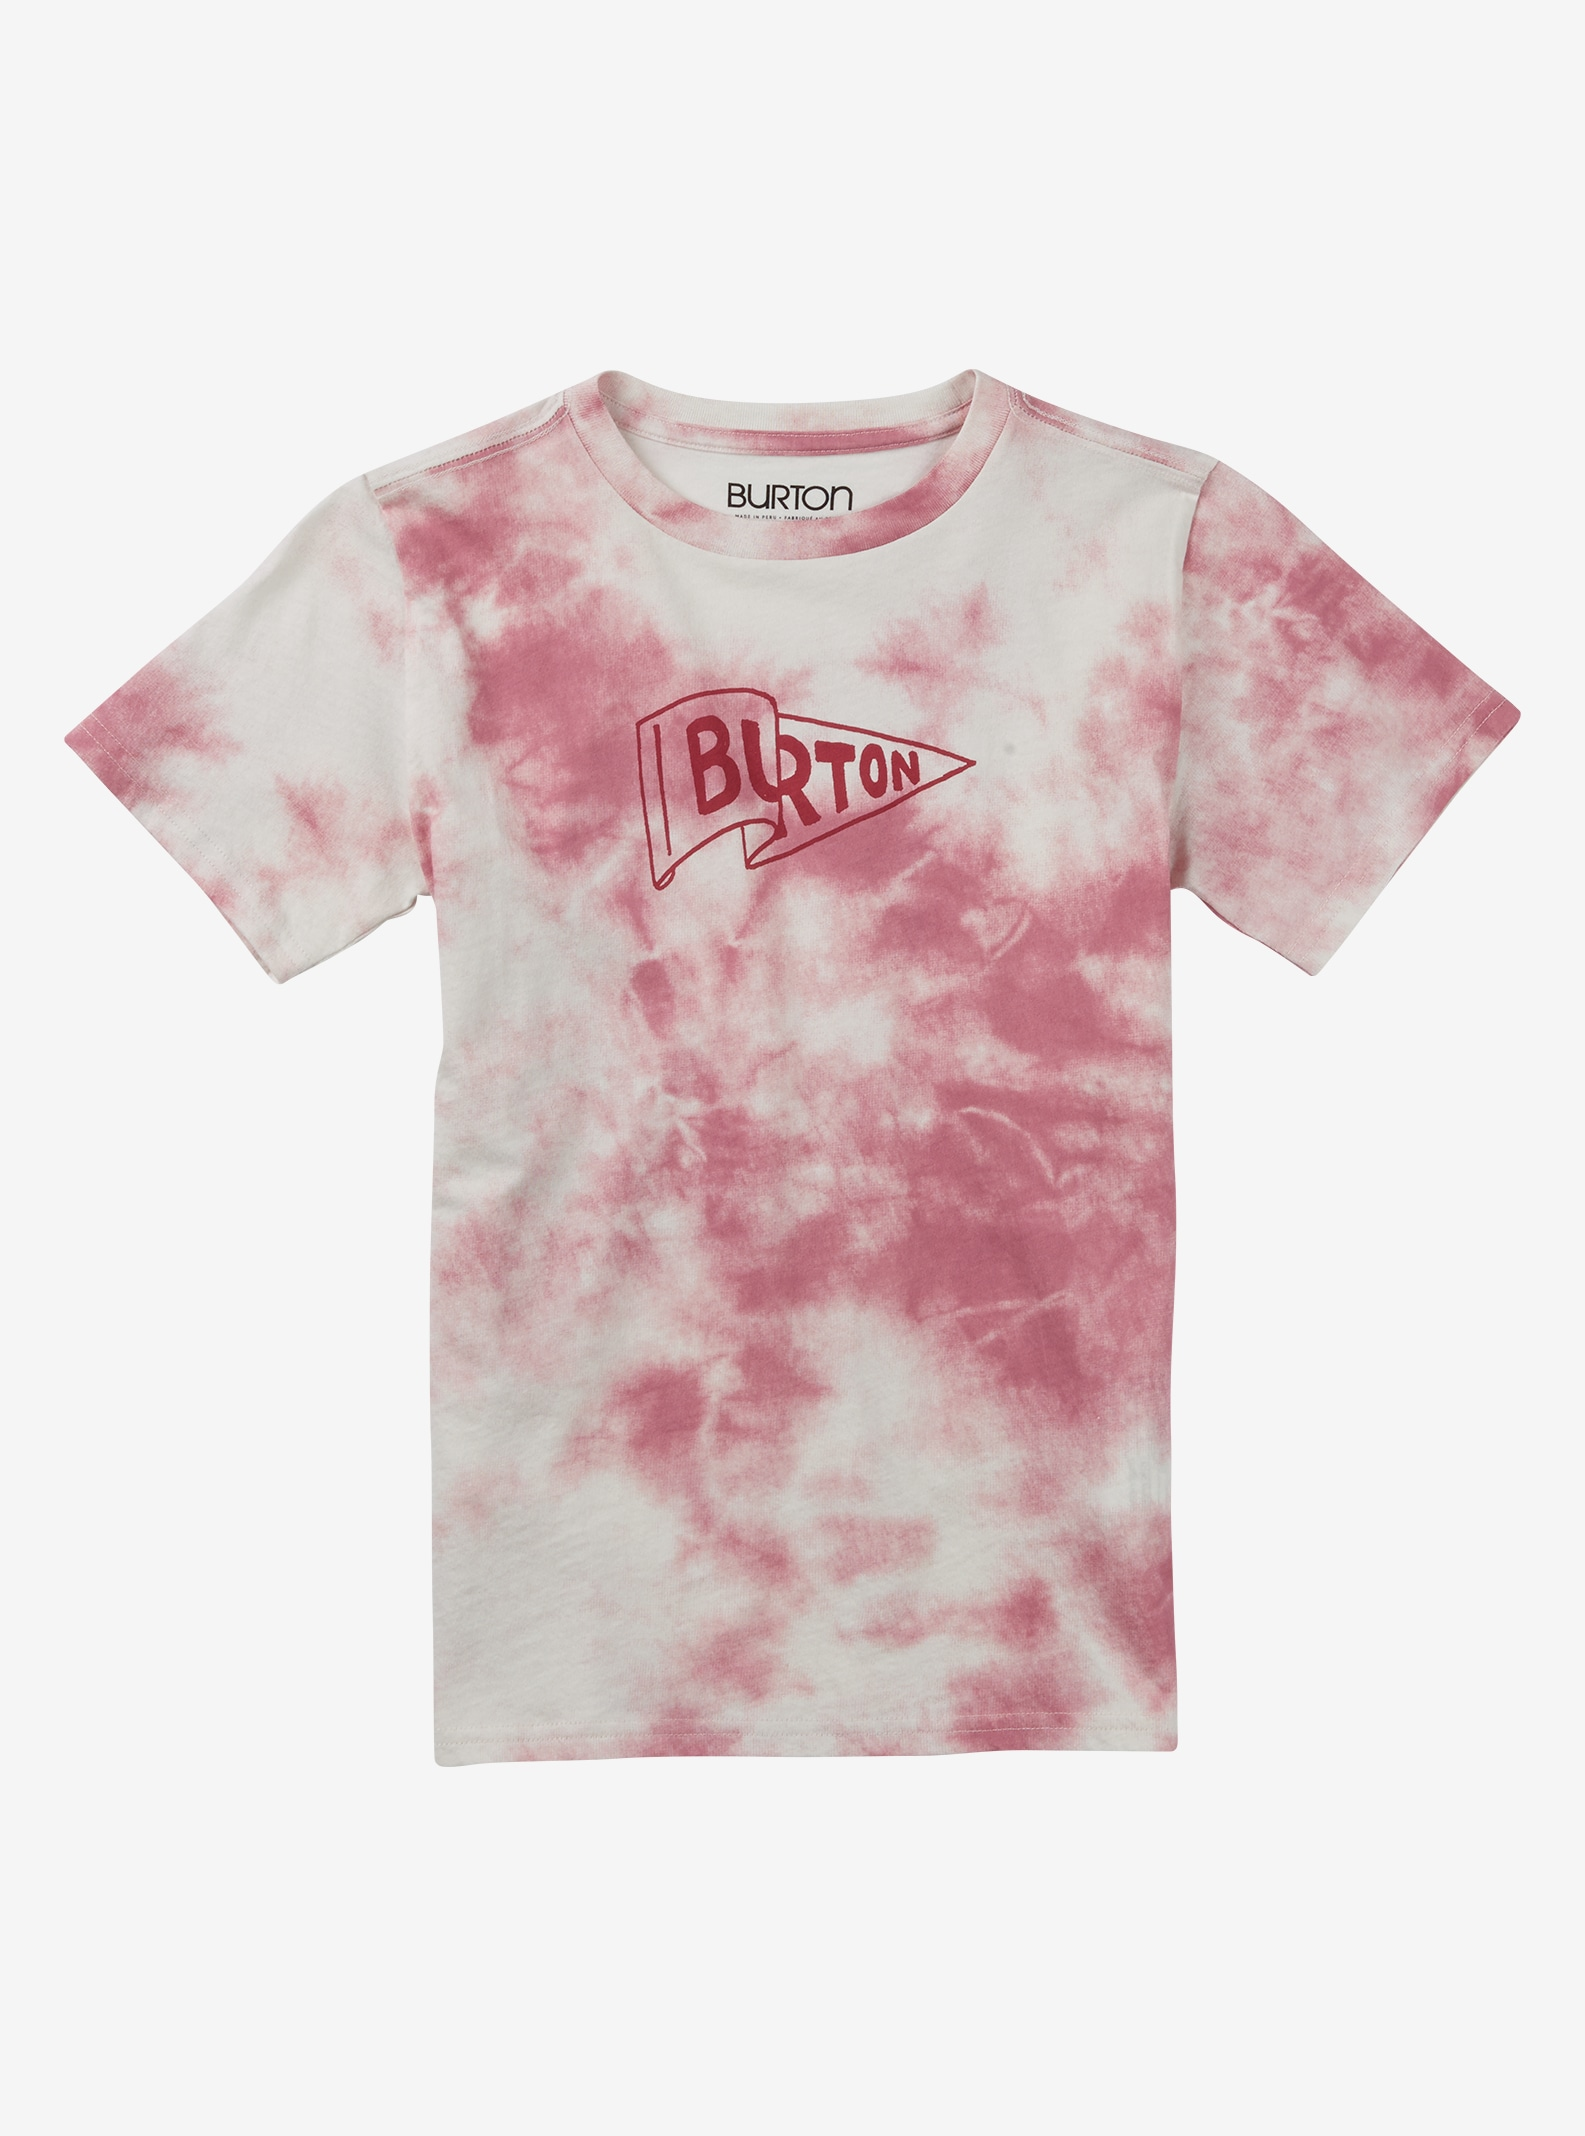 Burton Girls' Pennant Short Sleeve T Shirt shown in Berry Tie Dye